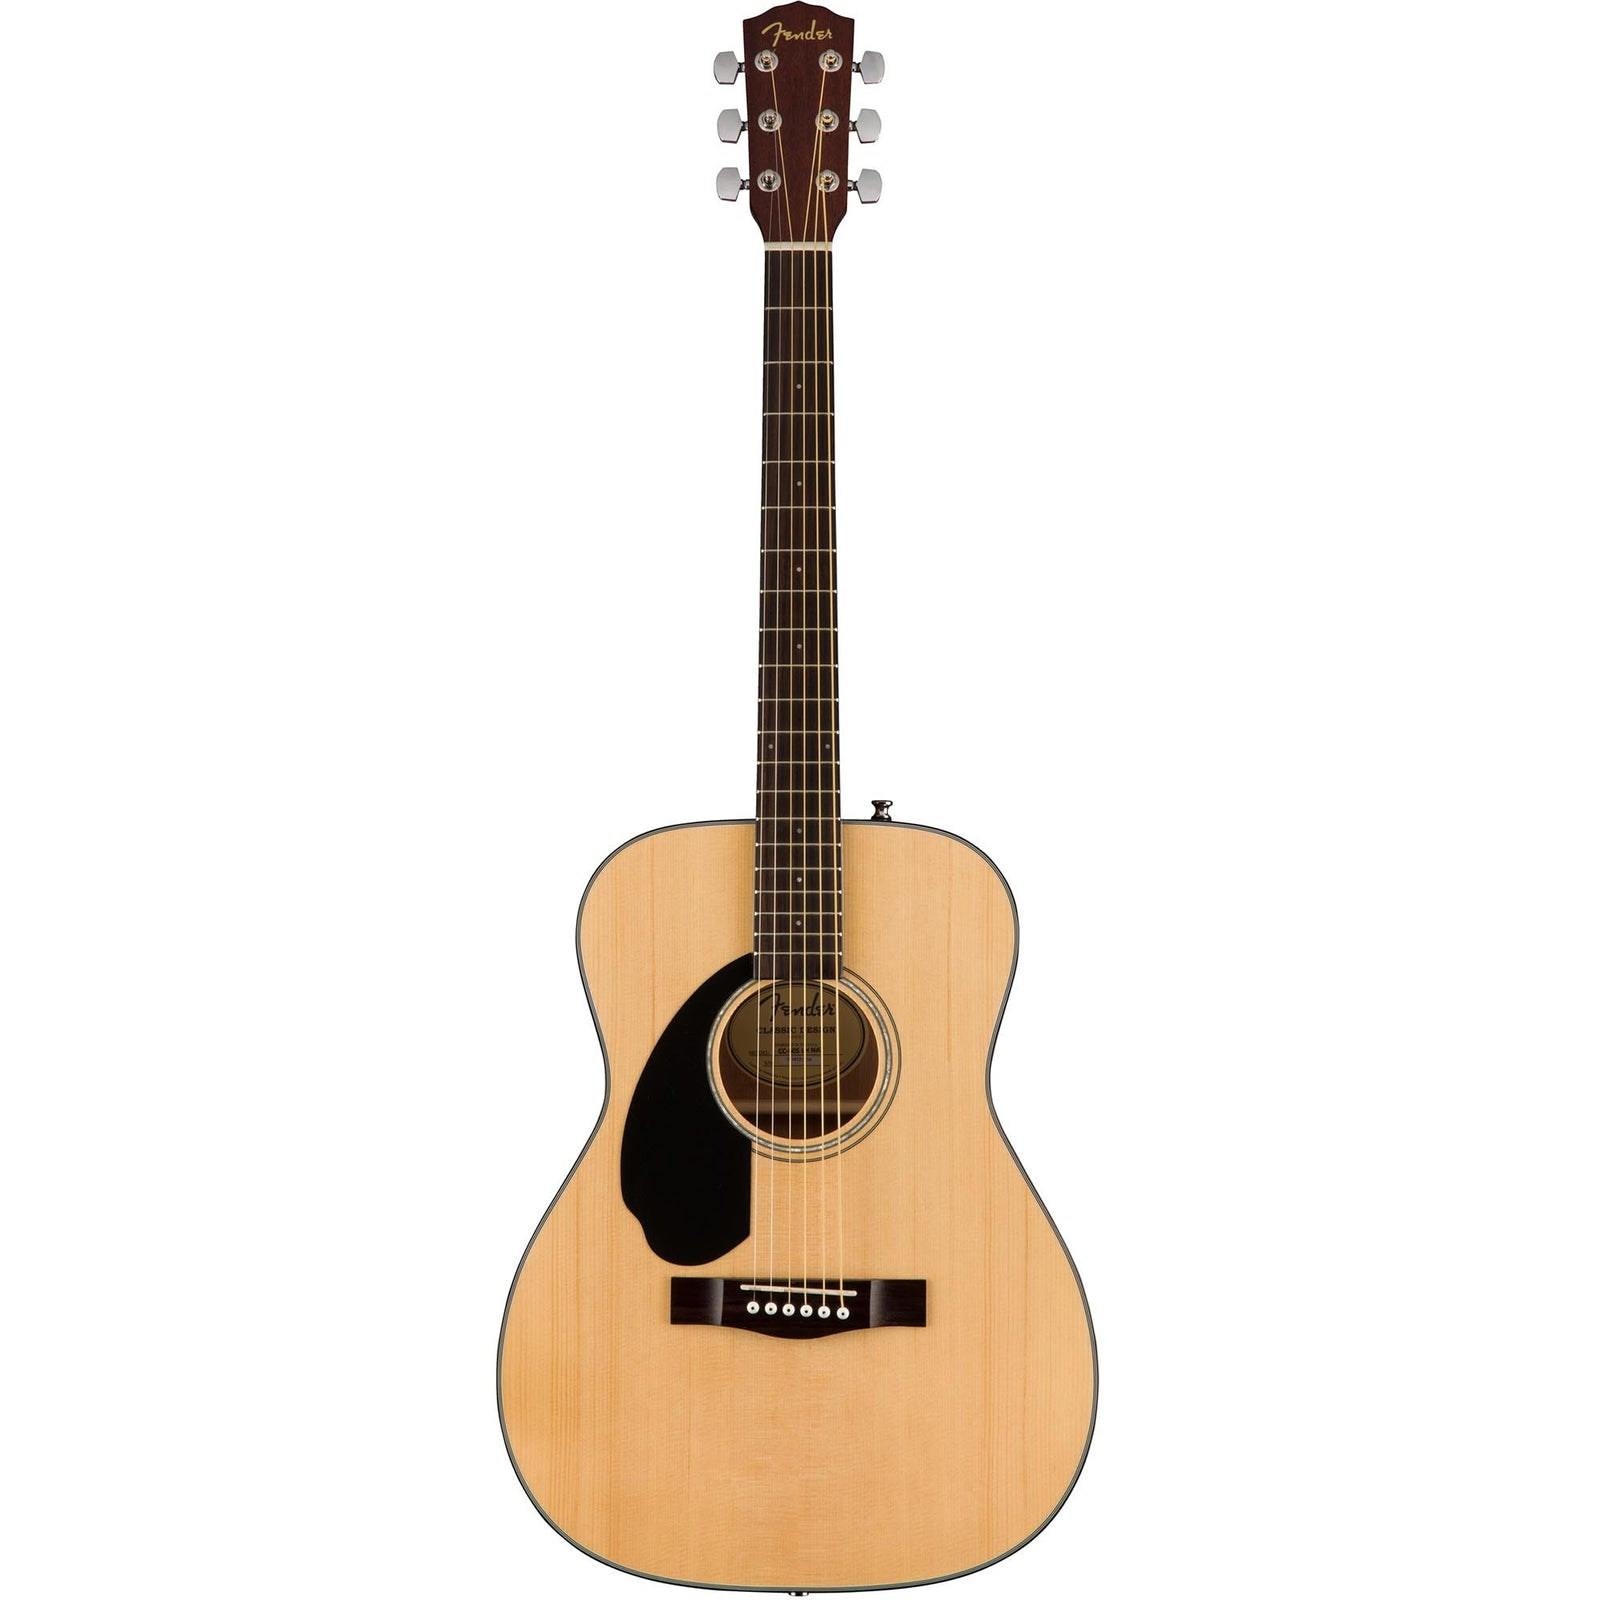 Fender CD-60S Left-Handed Acoustic Guitar with Electronics - Natural